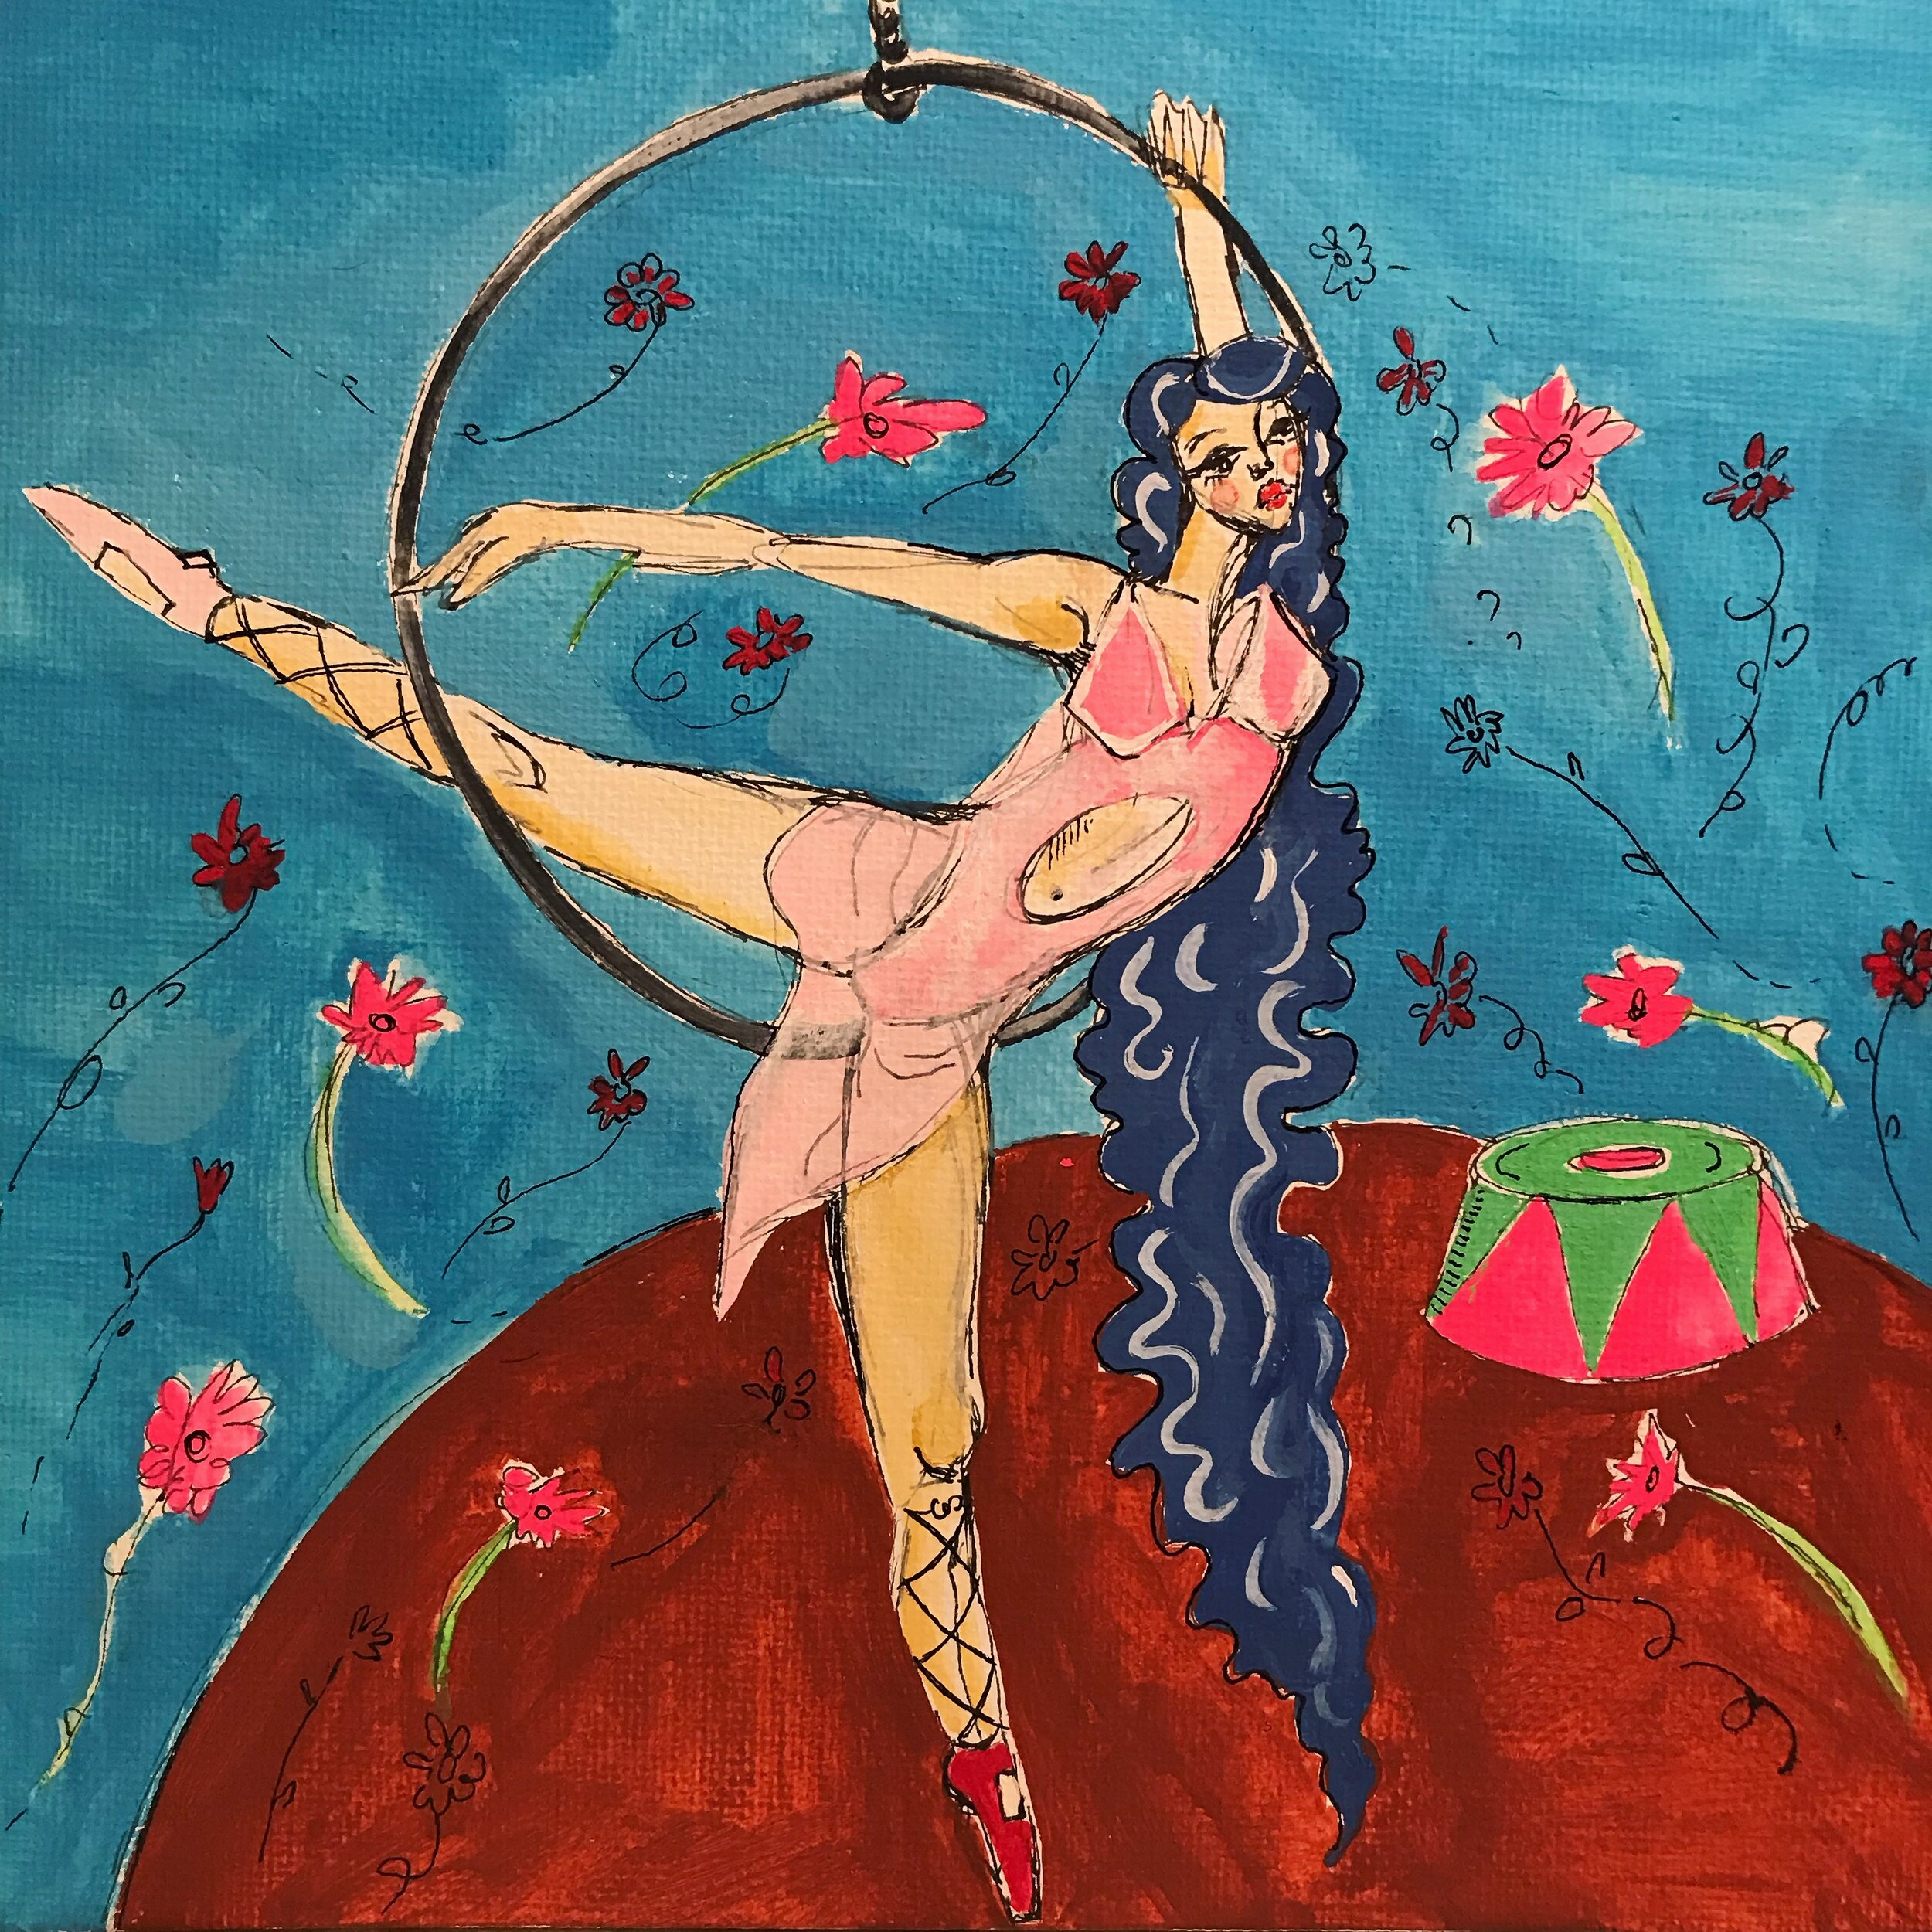 The Ring Dancer